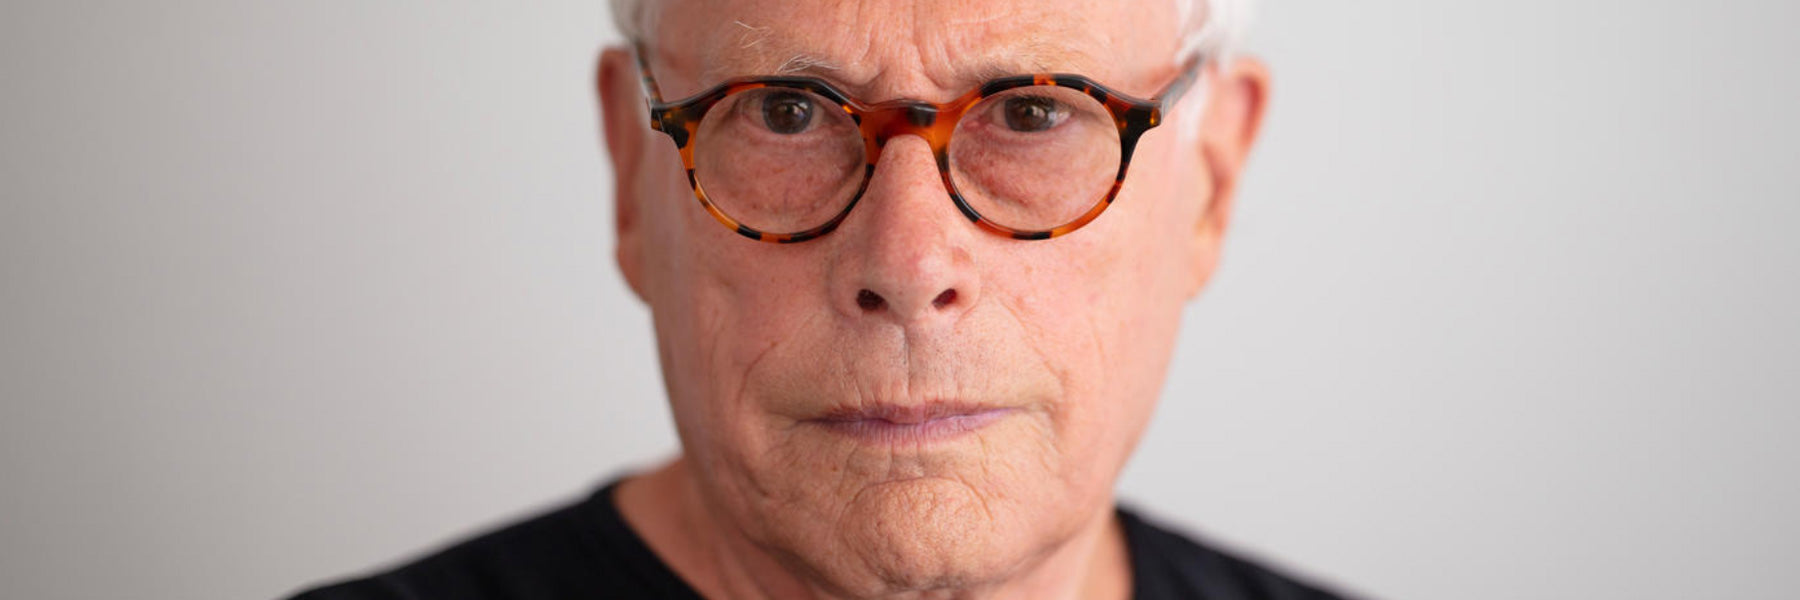 Dieter Rams Glasses